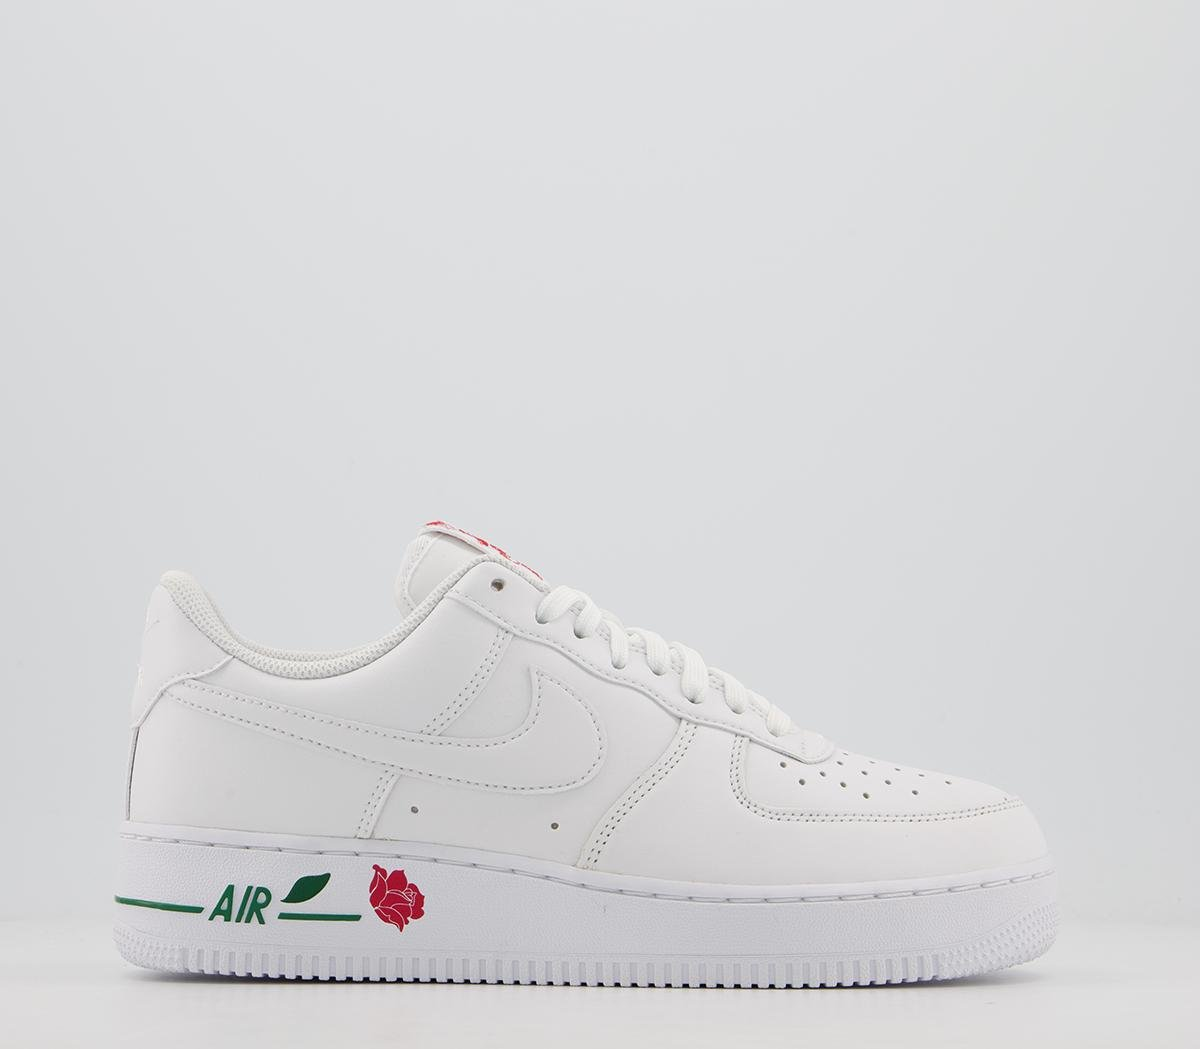 Ad: Most sizes restocked via Offspring: